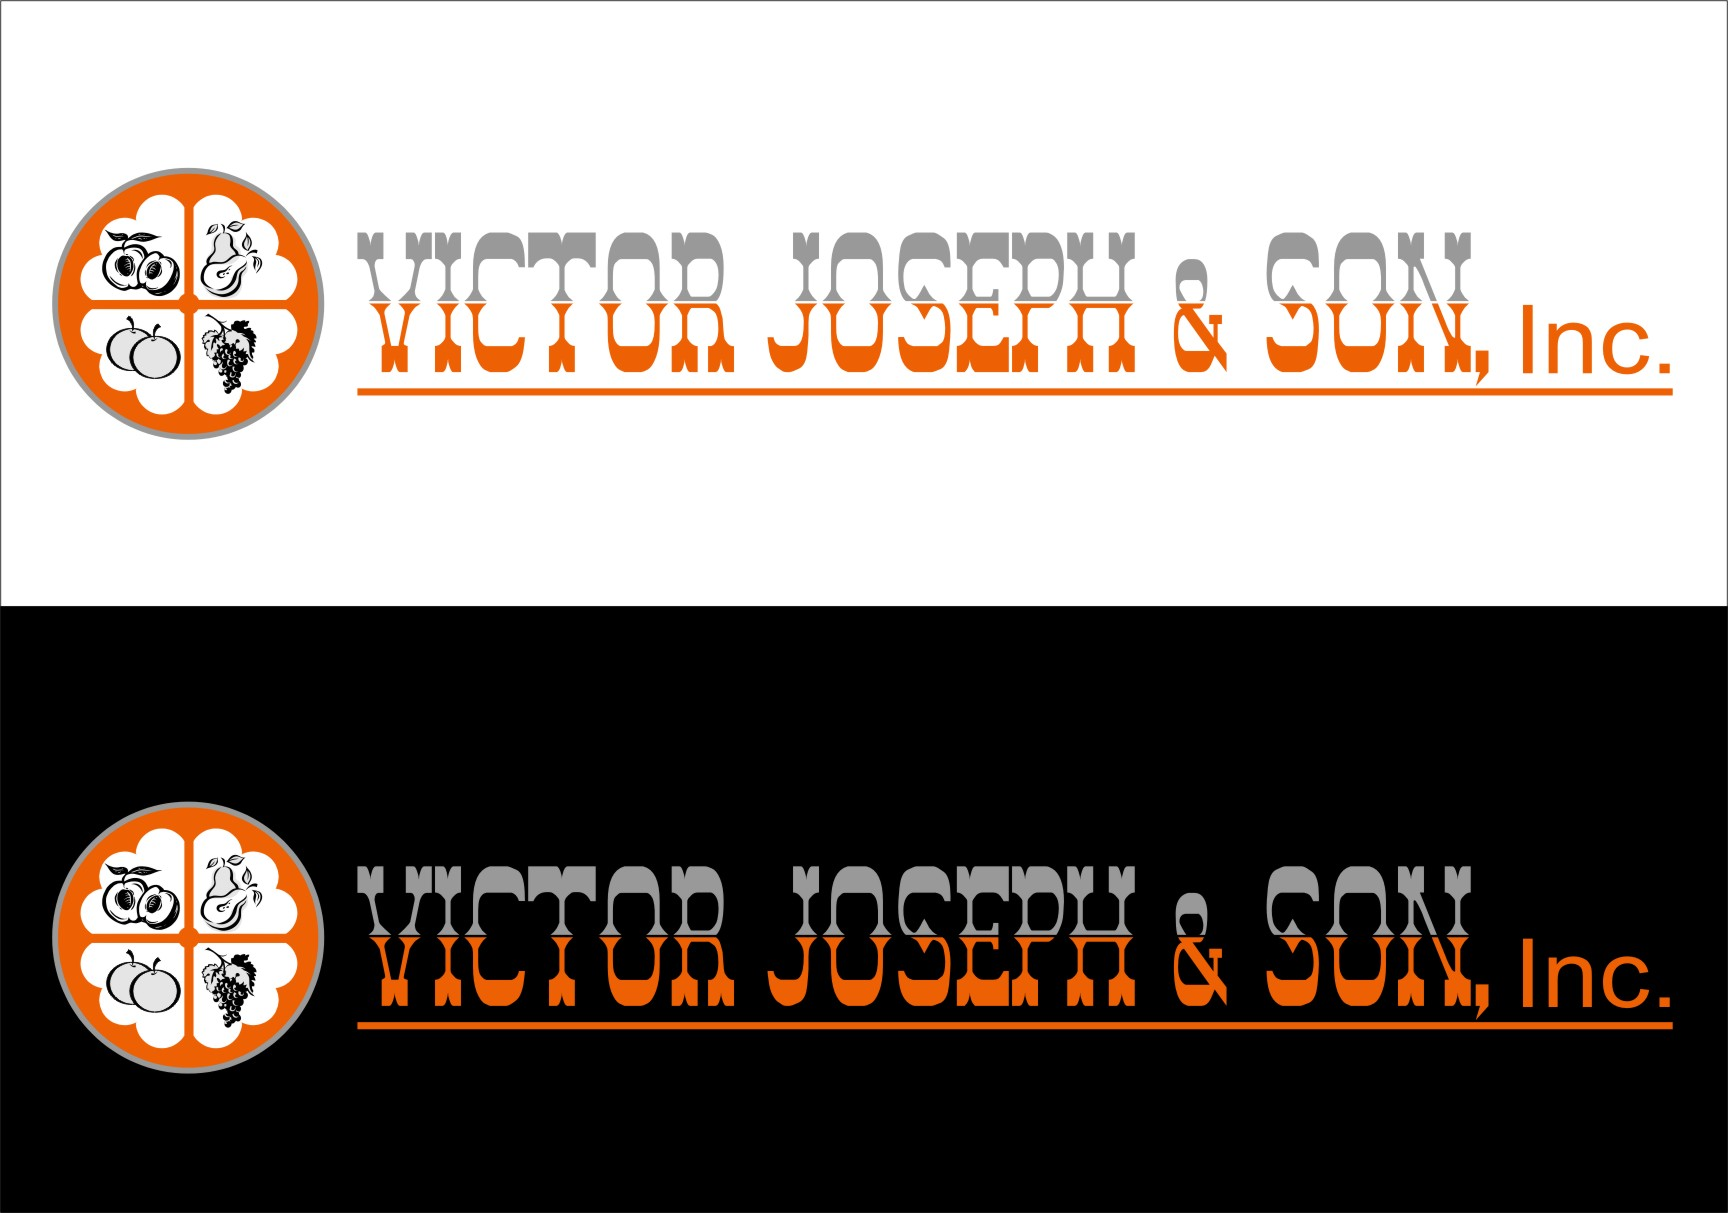 Logo Design by RasYa Muhammad Athaya - Entry No. 83 in the Logo Design Contest Imaginative Logo Design for Victor Joseph & Son, Inc..